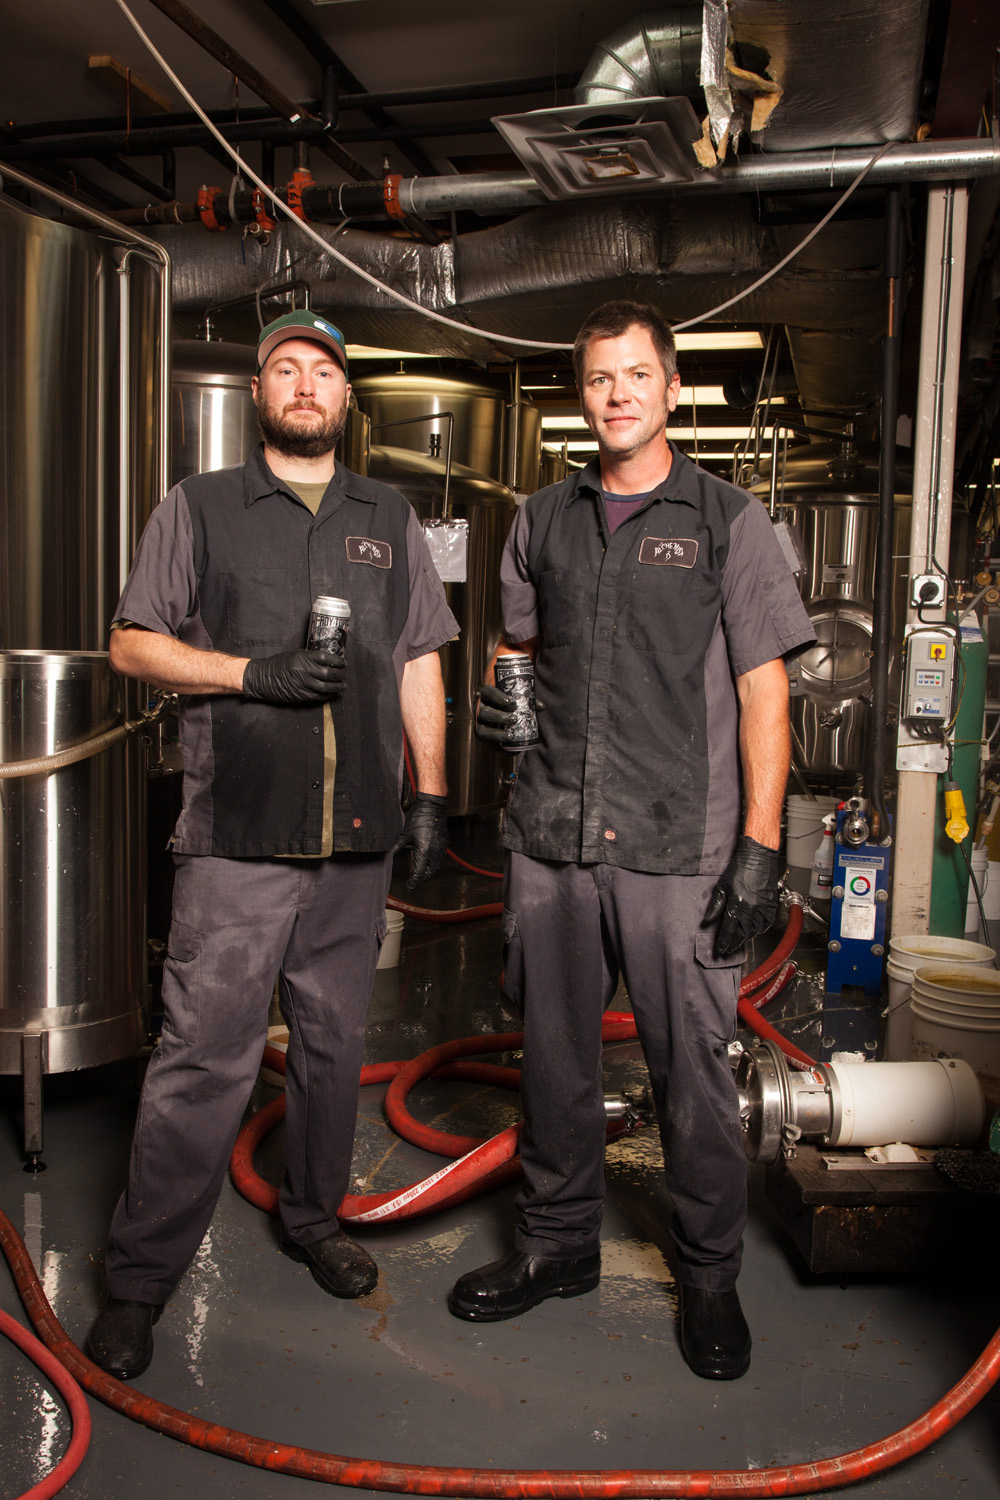 Jim Conroy, Lead Brewer and Jim Robinson, Brewer Alchemist Brewery Waterbury, VT Established in 2003